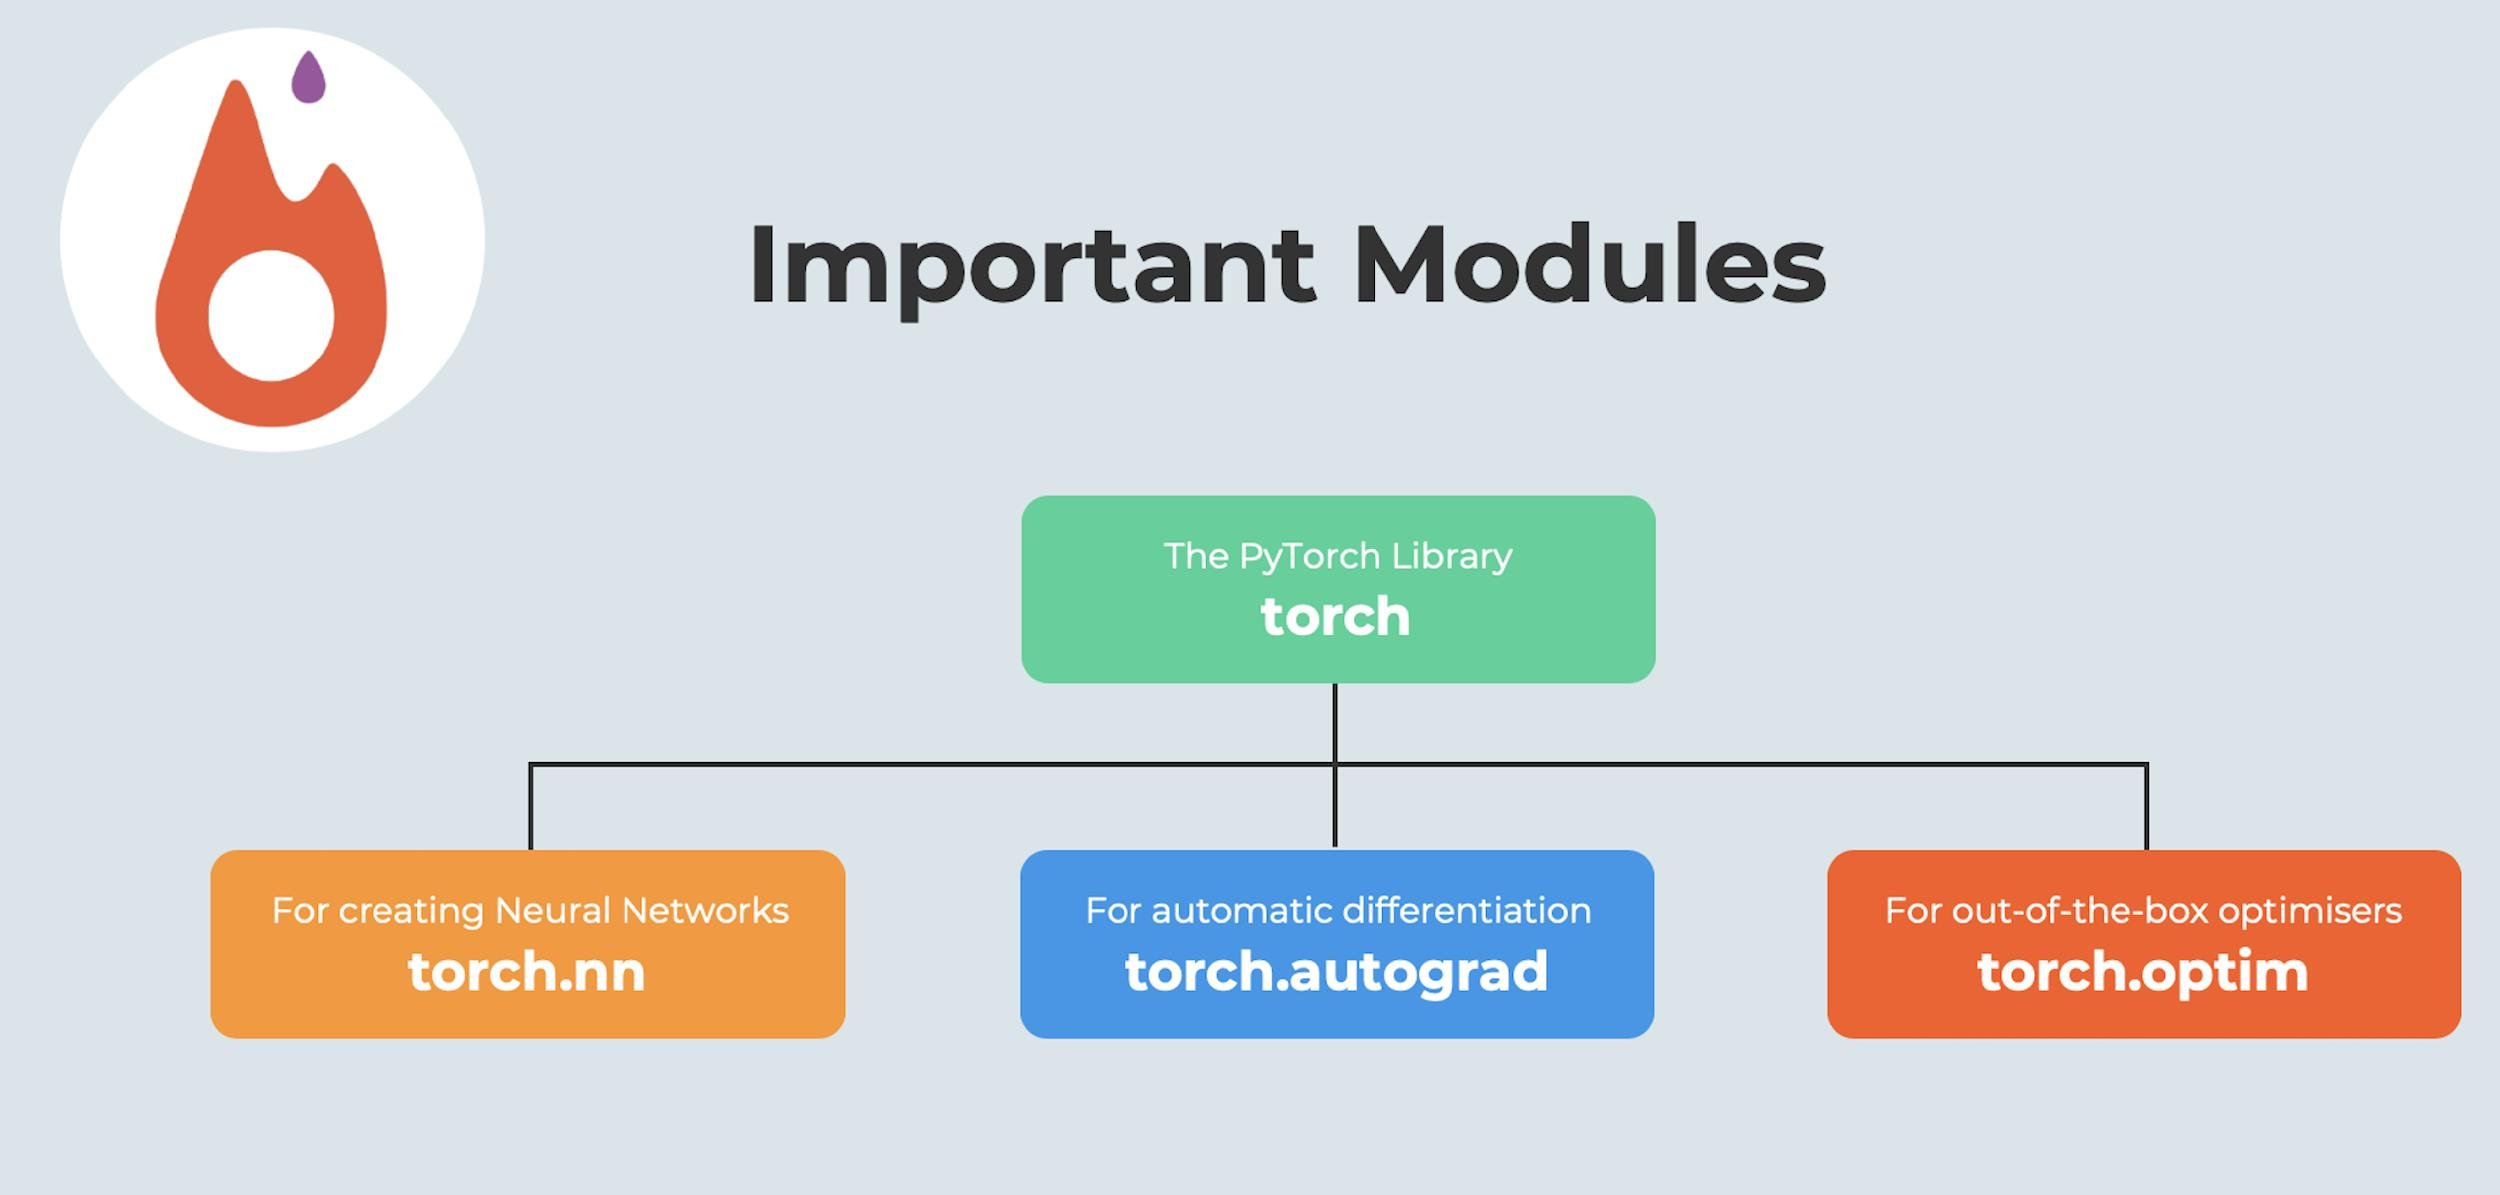 Figure 2. Important modules in the PyTorch library